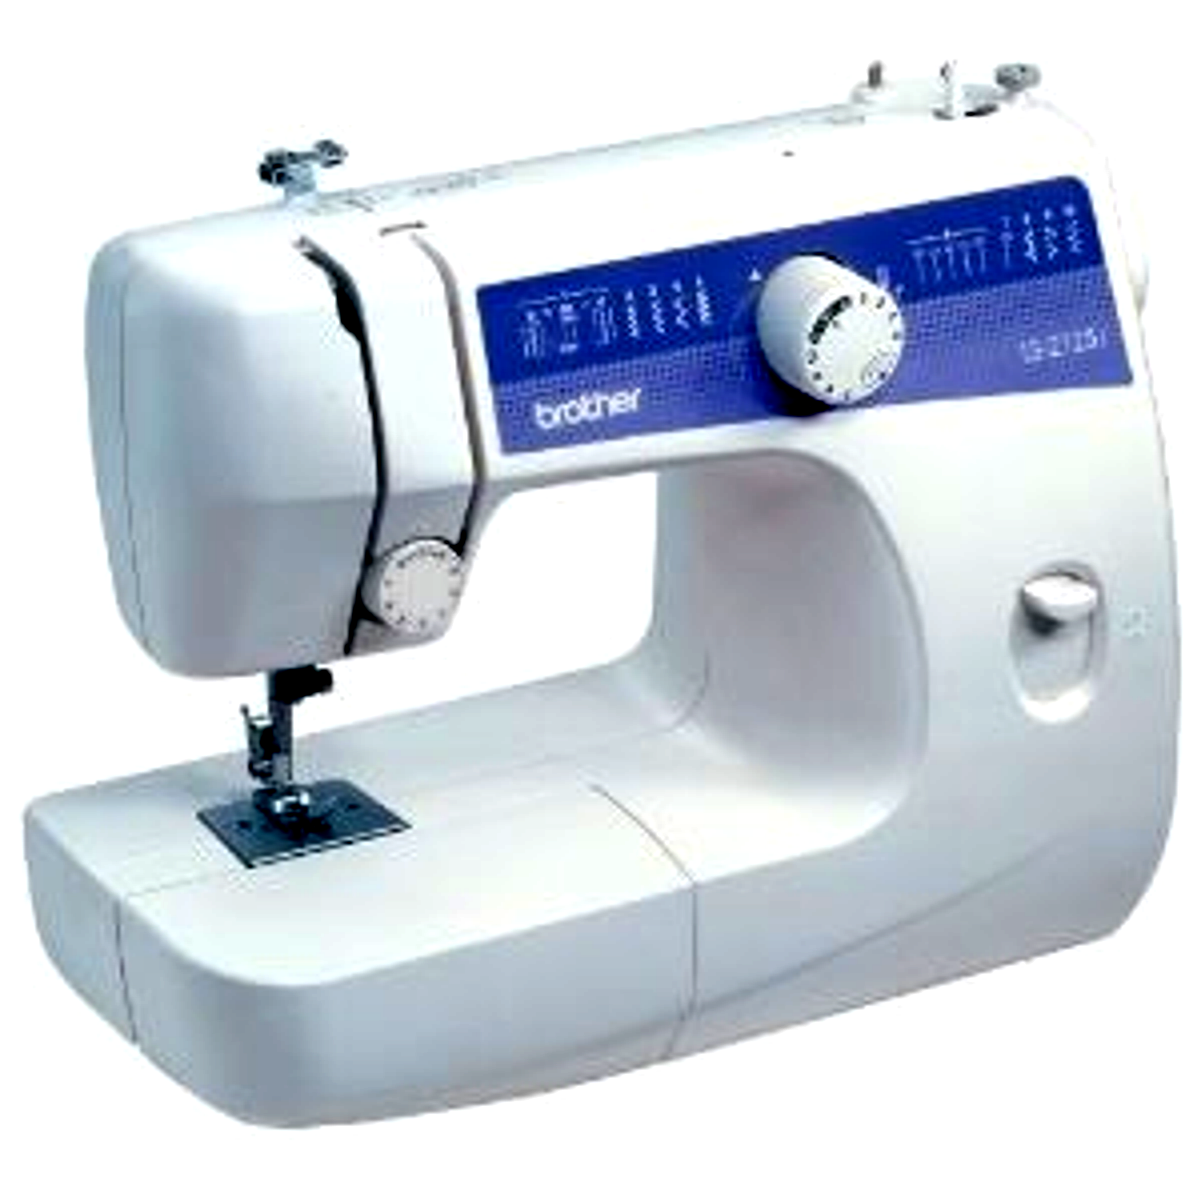 This sewing machine is the ultimate companion for creative types who aren't afraid of starting complex sewing projects. You have a whopping built-in stitches and 13 styles of buttonholes, which you can use in limitless combinations without getting bored.